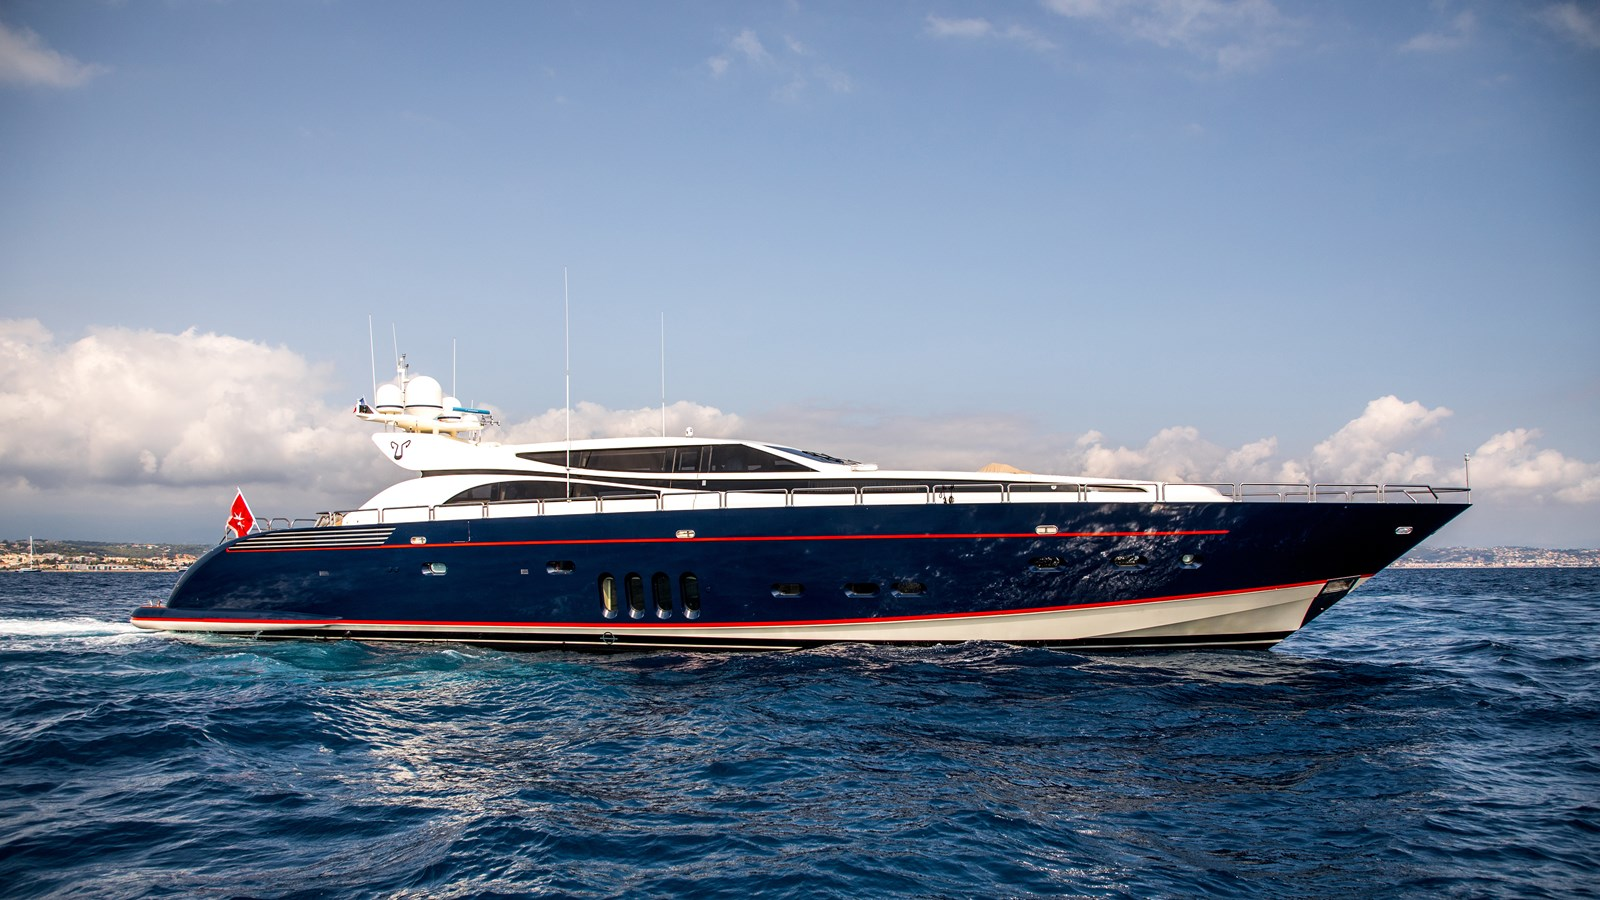 Cheeky-Tiger-Luxury-Yacht-26 2004 LEOPARD  Motor Yacht 2714690